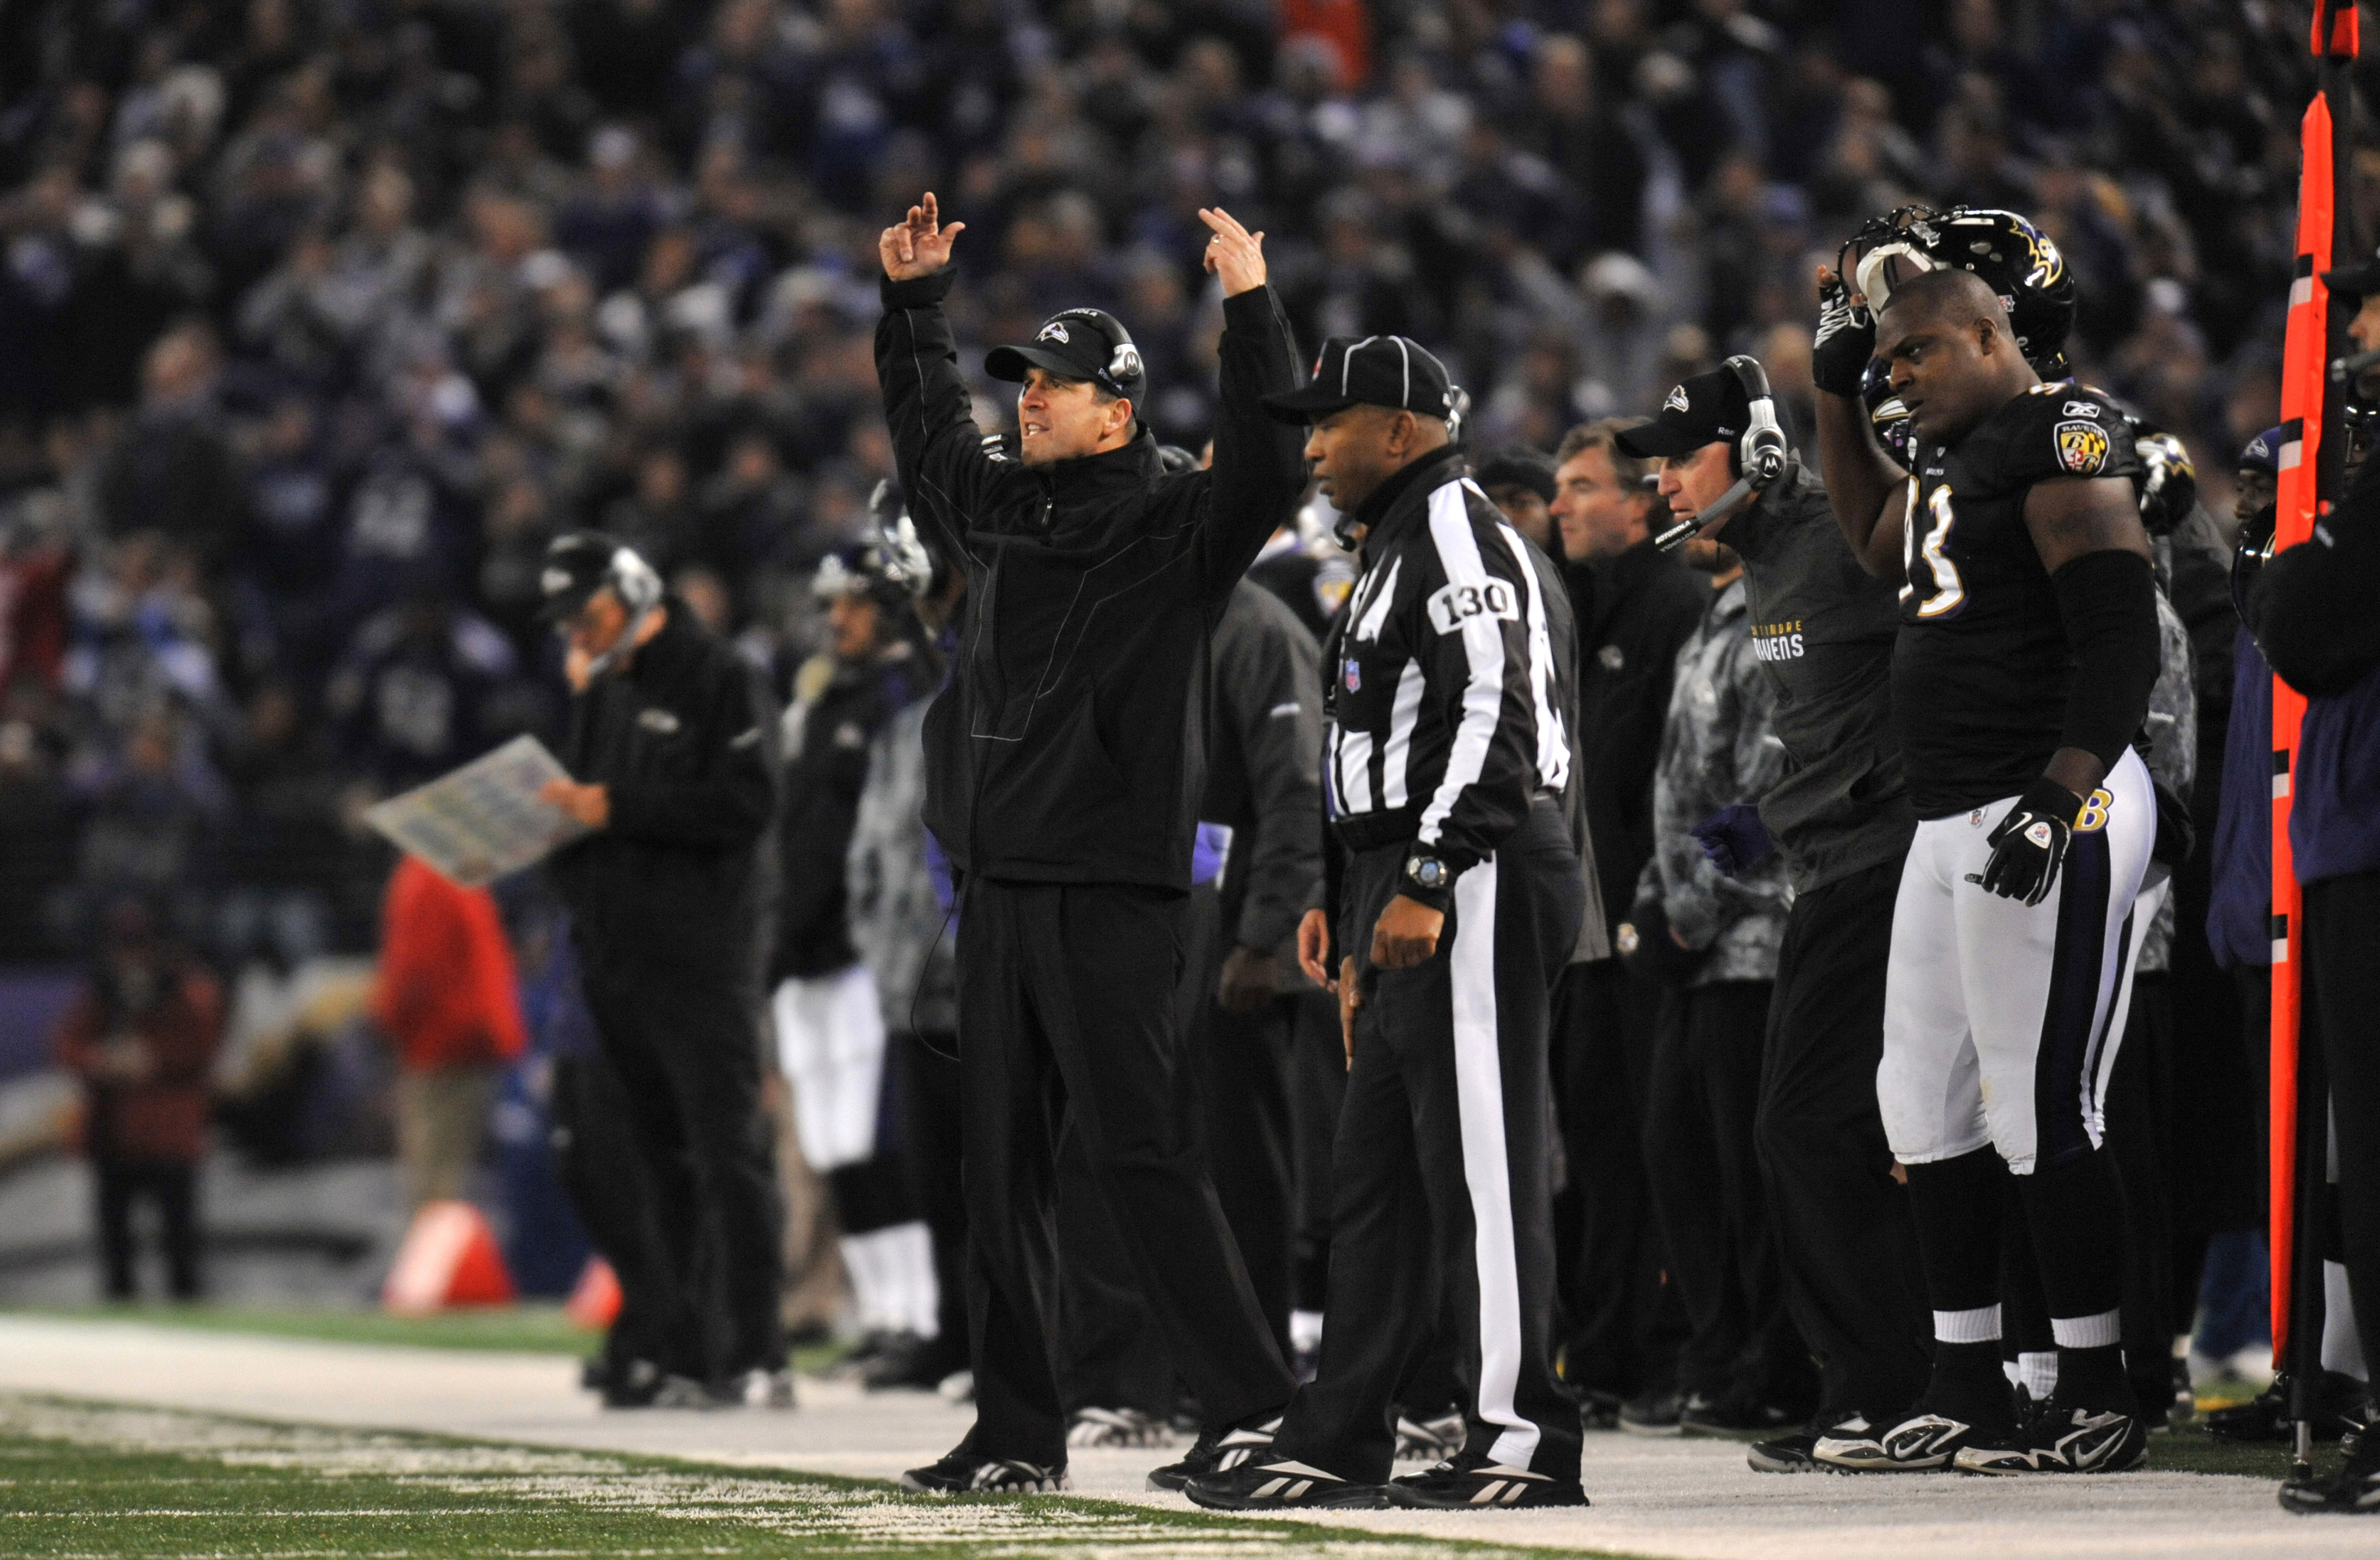 BALTIMORE, MD - NOVEMBER 28:  Head coach John Harbaugh of the Baltimore Ravens cheers on his team during the game against the Tampa Bay Buccaneers at M&T Bank Stadium on November 28, 2010 in Baltimore, Maryland. The Ravens defeated the Buccaneers 17-10. (